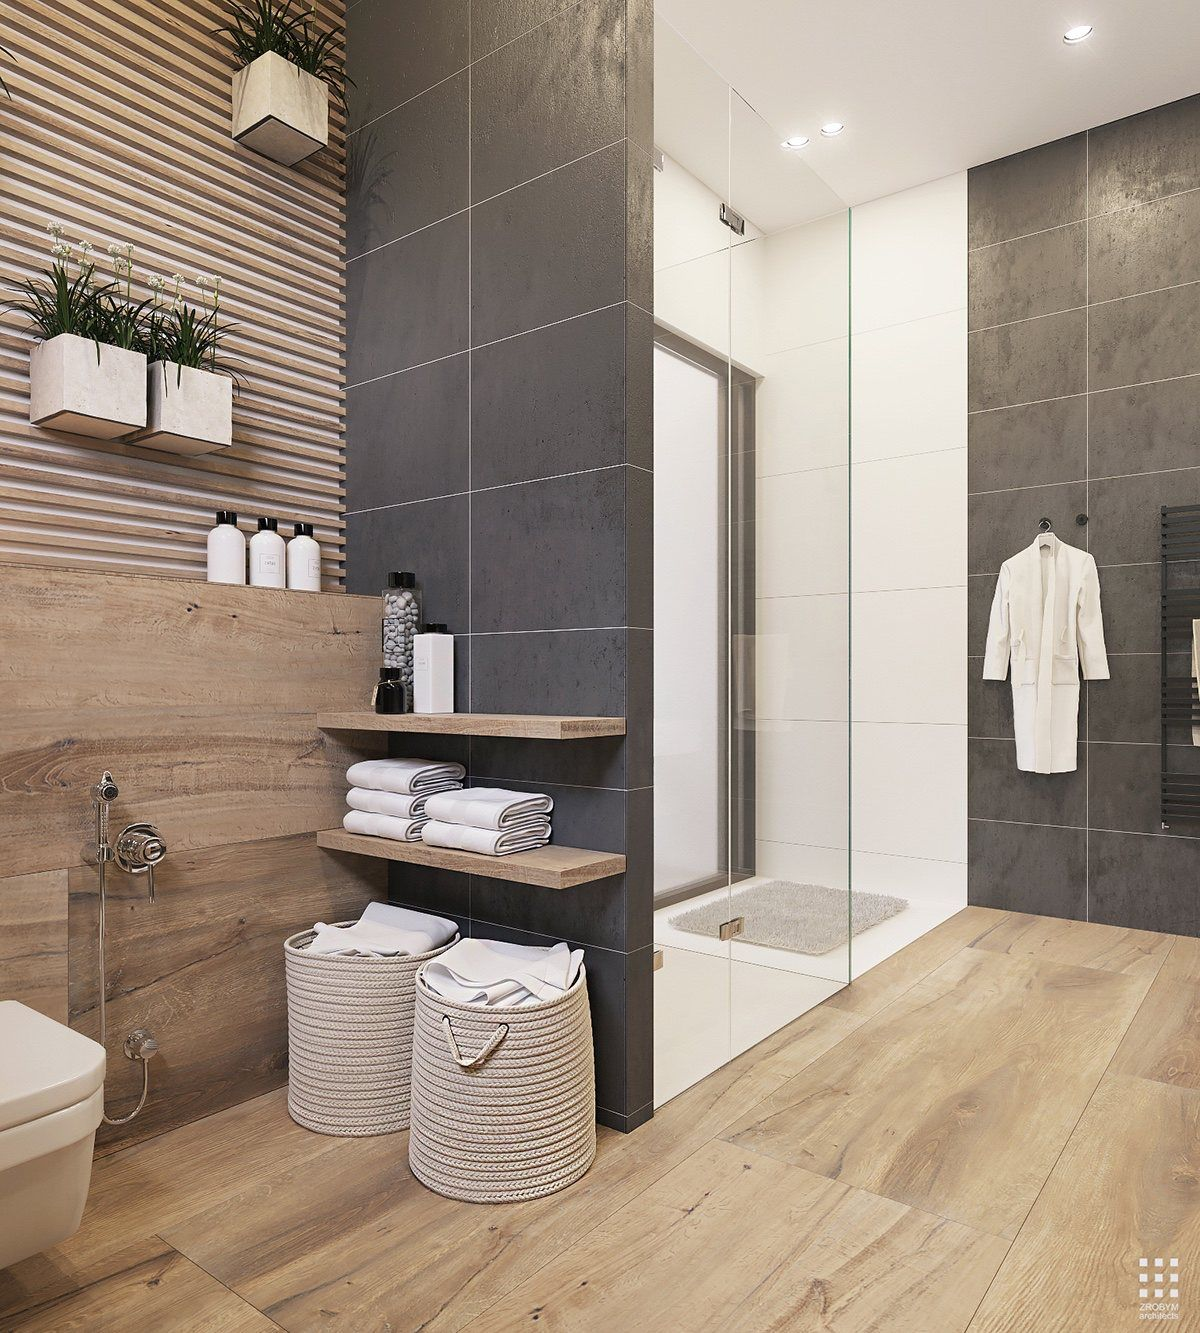 Wooden Bathroom Tiles: Wood And Dark Grey Bathroom Tiles